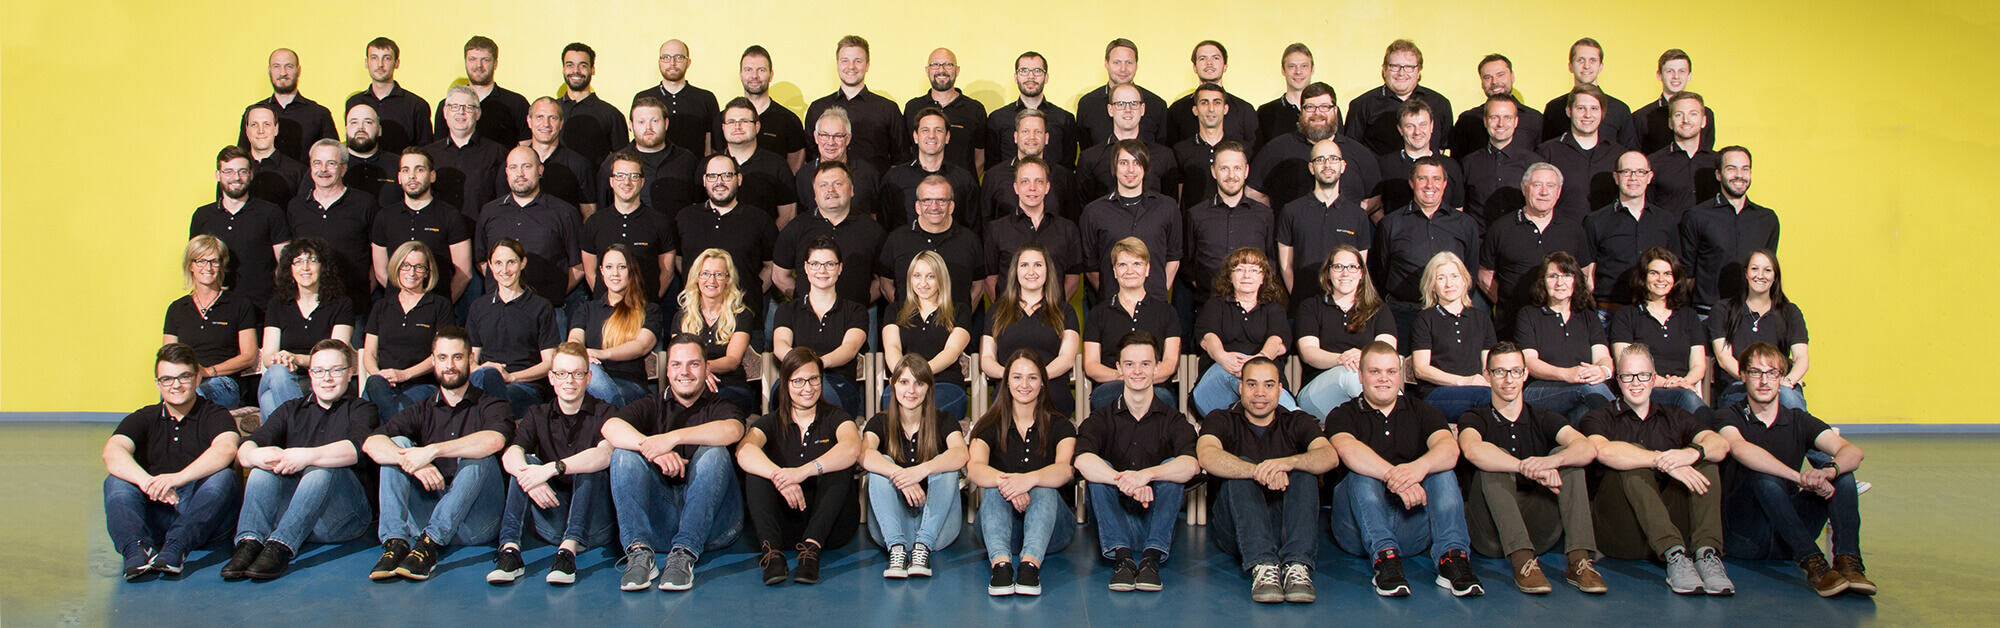 Teamfoto Krämer IT